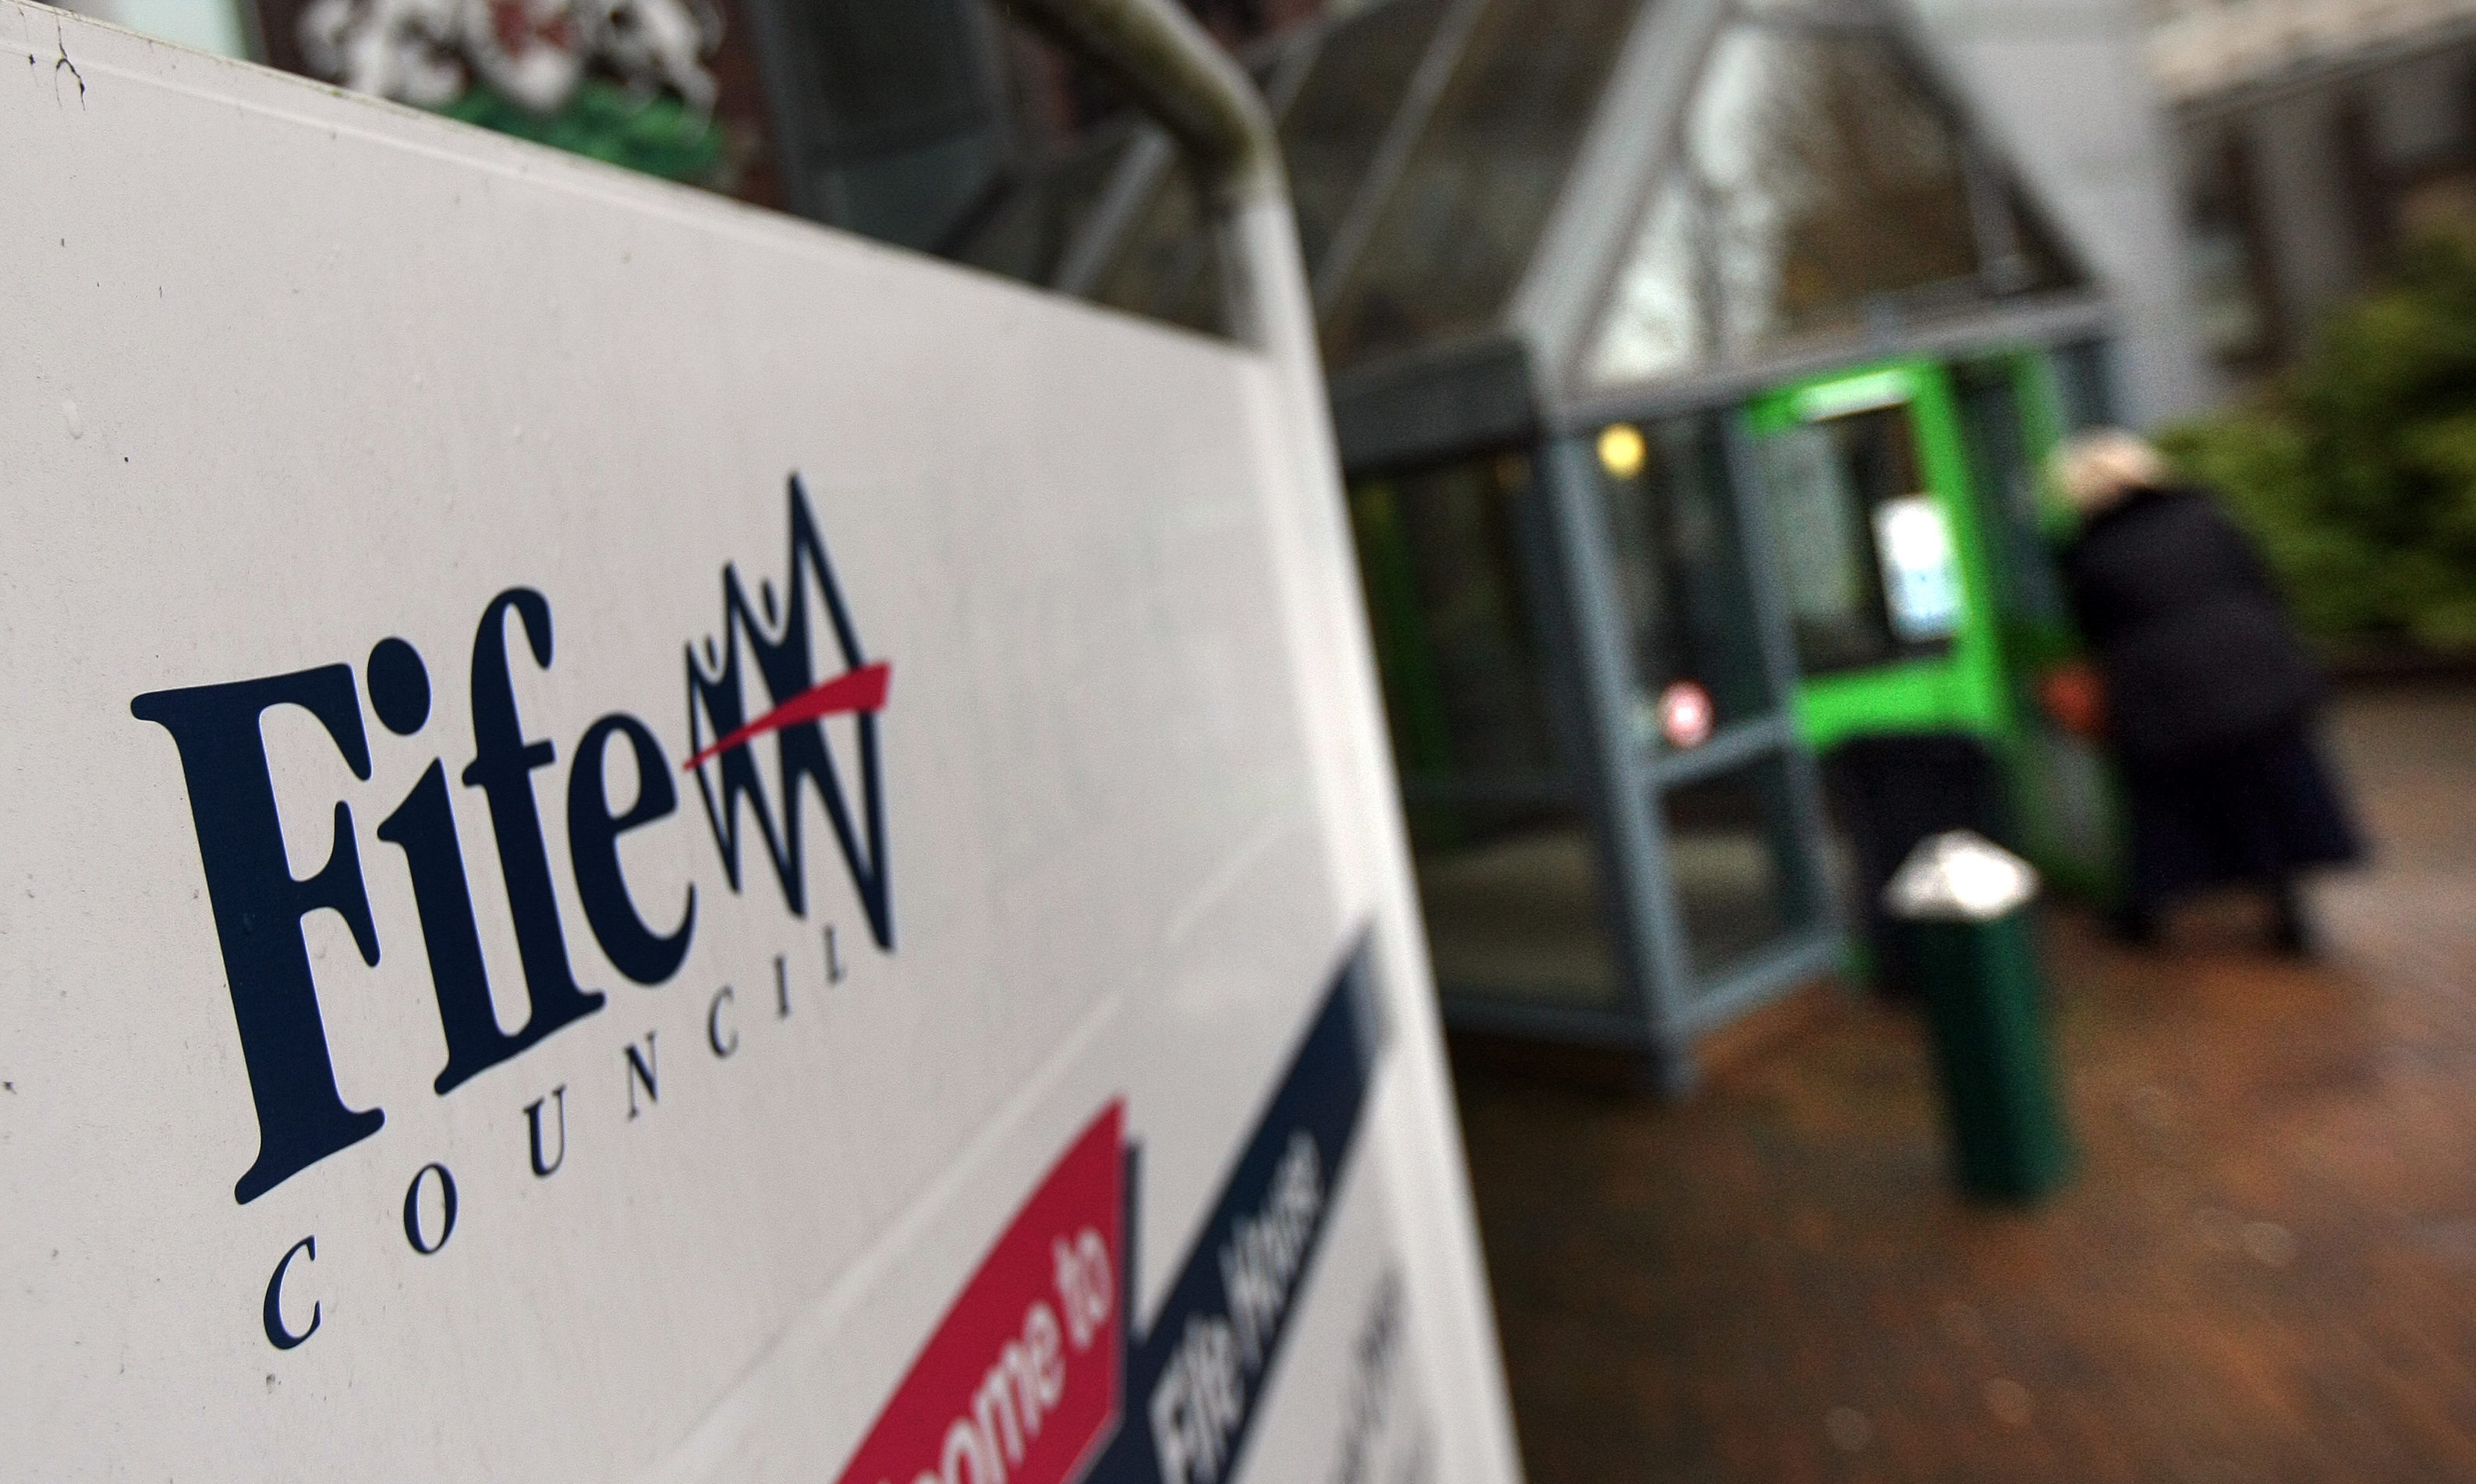 Fife Council's mobile library service is to be reduced from weekly to fortnightly